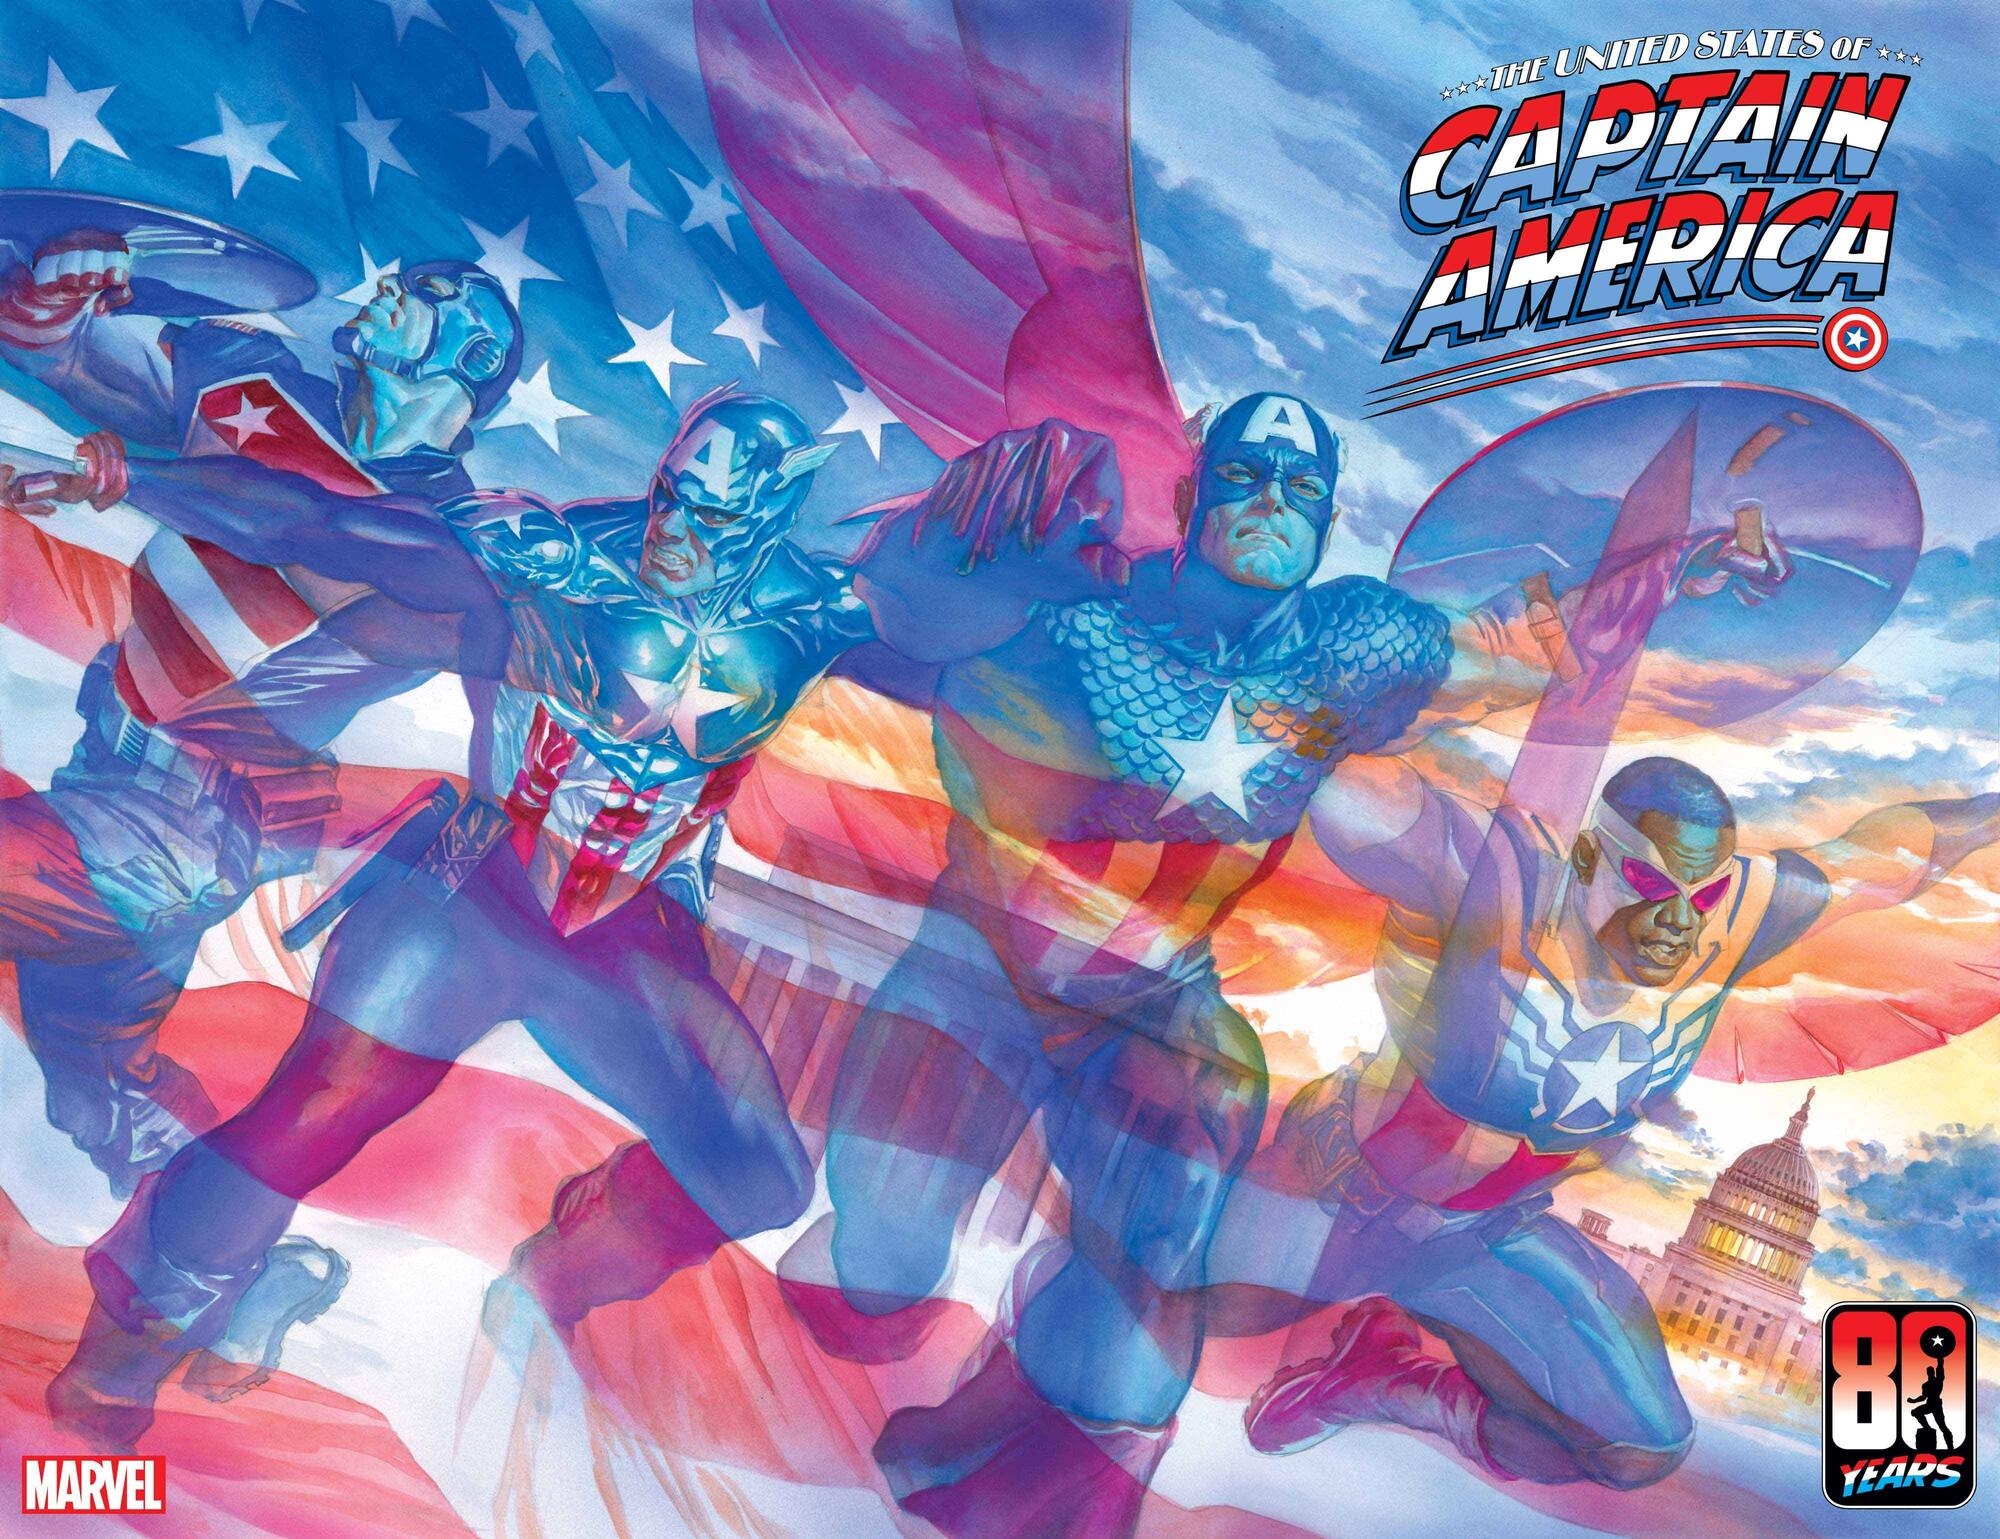 THE UNITED STATES OF CAPTAIN AMERICA (2021) #1 Cover by Alex Ross